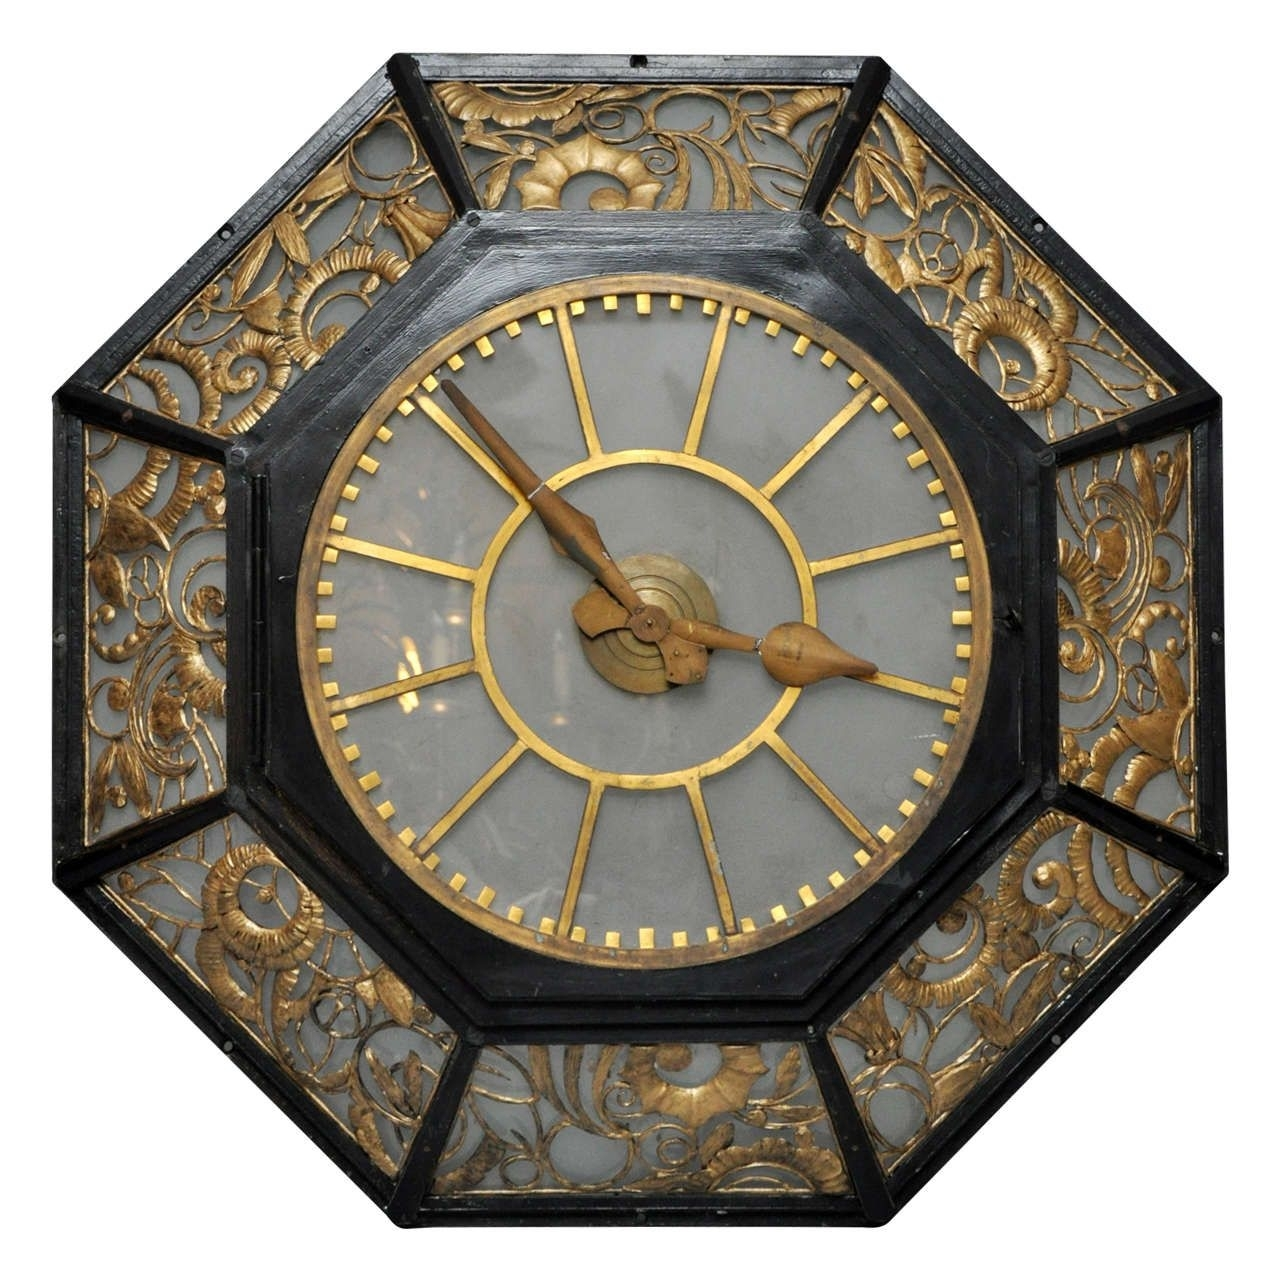 French Art Deco Wall Clock | Timepieces | Pinterest | Deco Wall for Art Deco Wall Clock (Image 11 of 20)